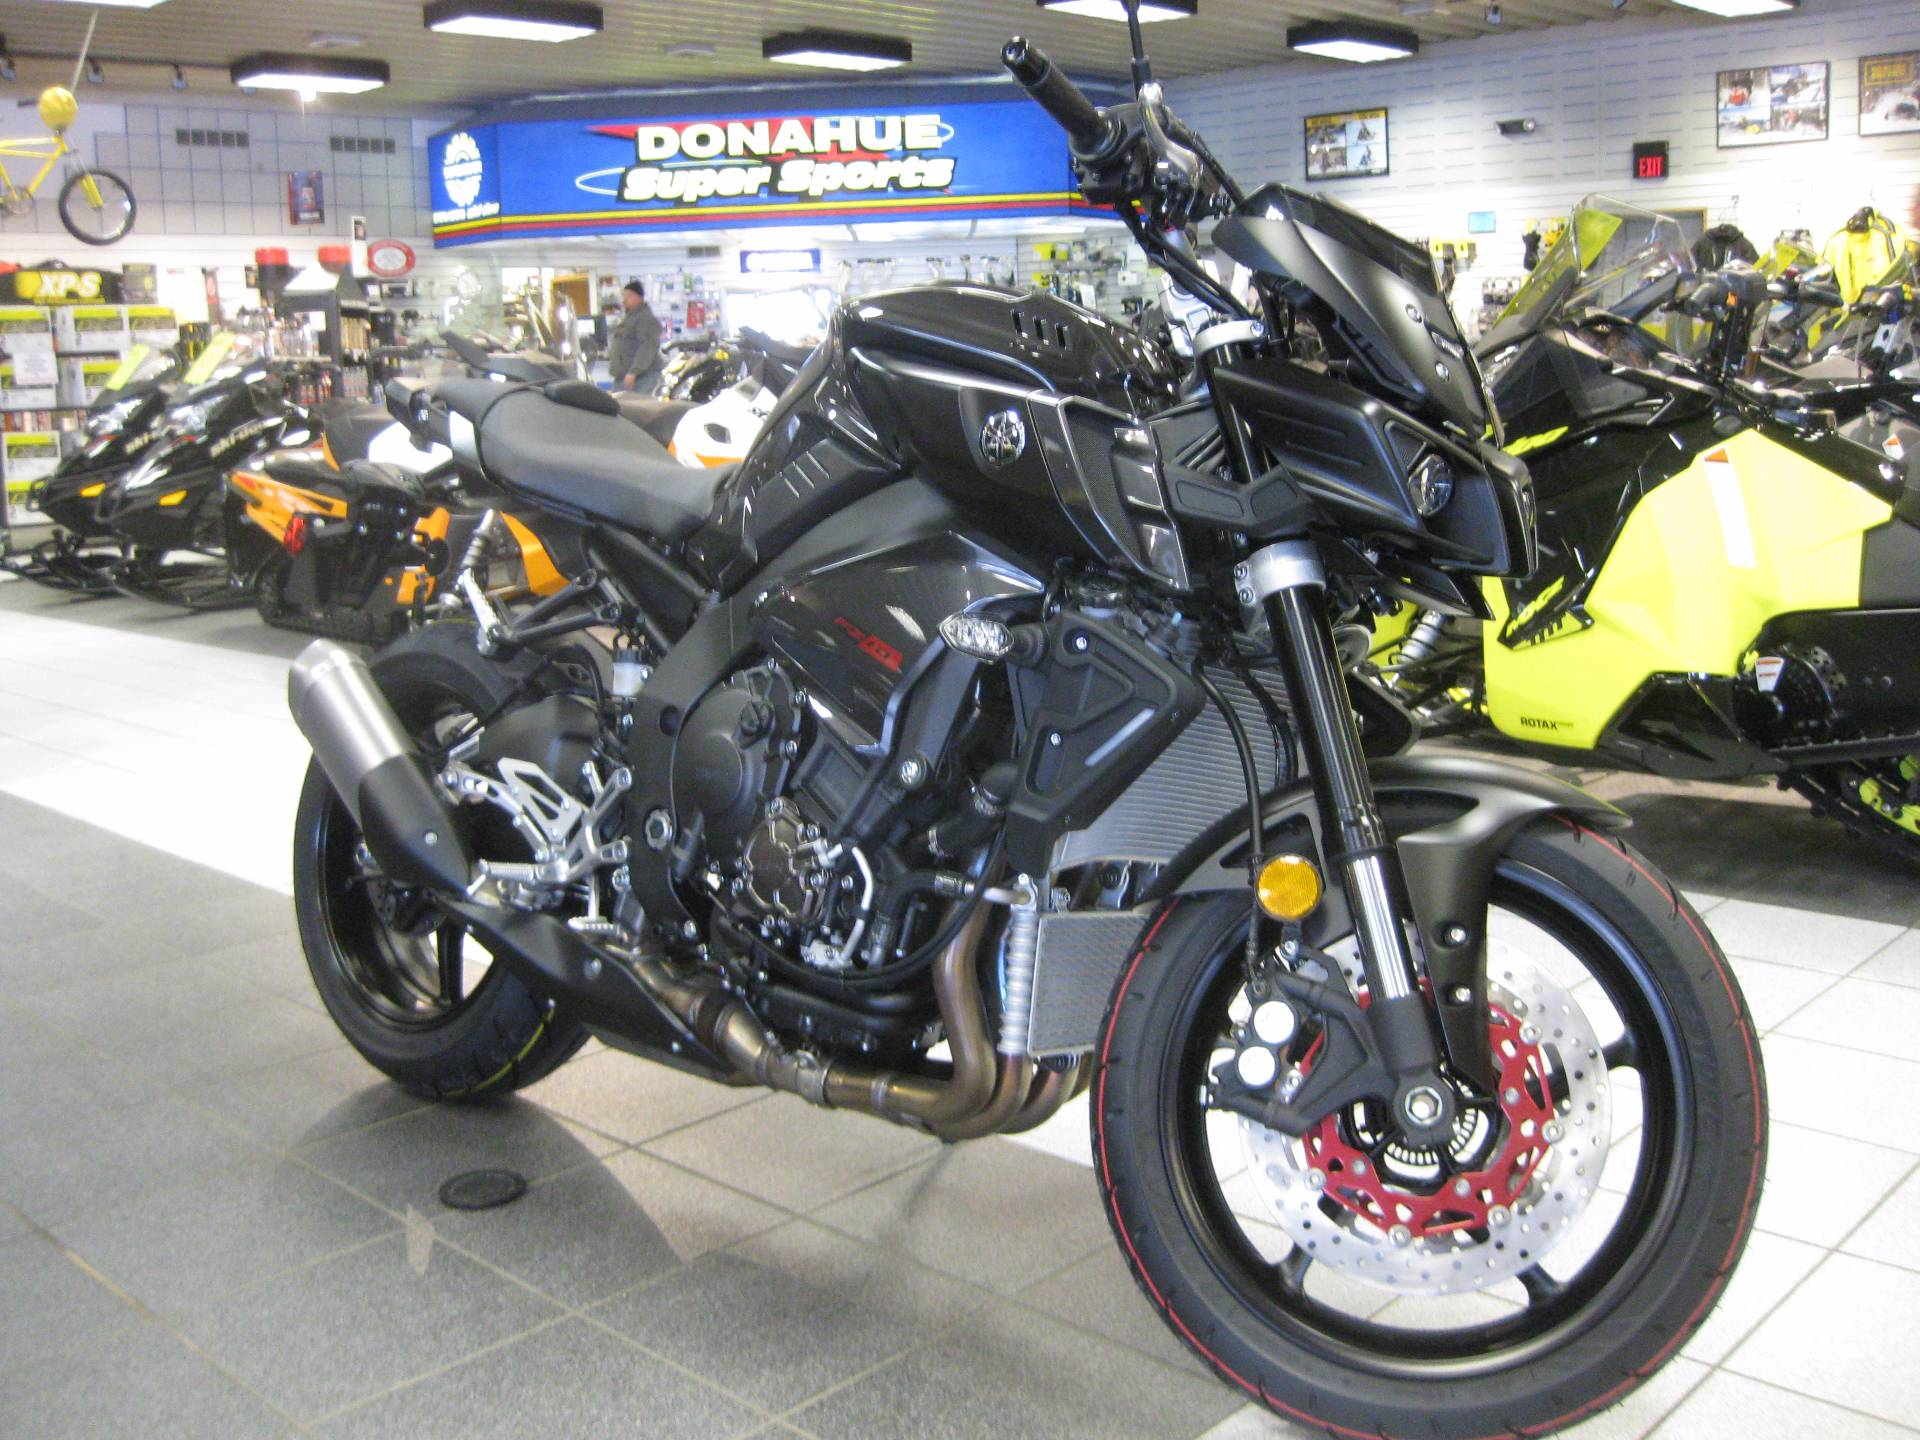 new 2017 yamaha fz 10 motorcycles in wisconsin rapids wi stock number 09256. Black Bedroom Furniture Sets. Home Design Ideas